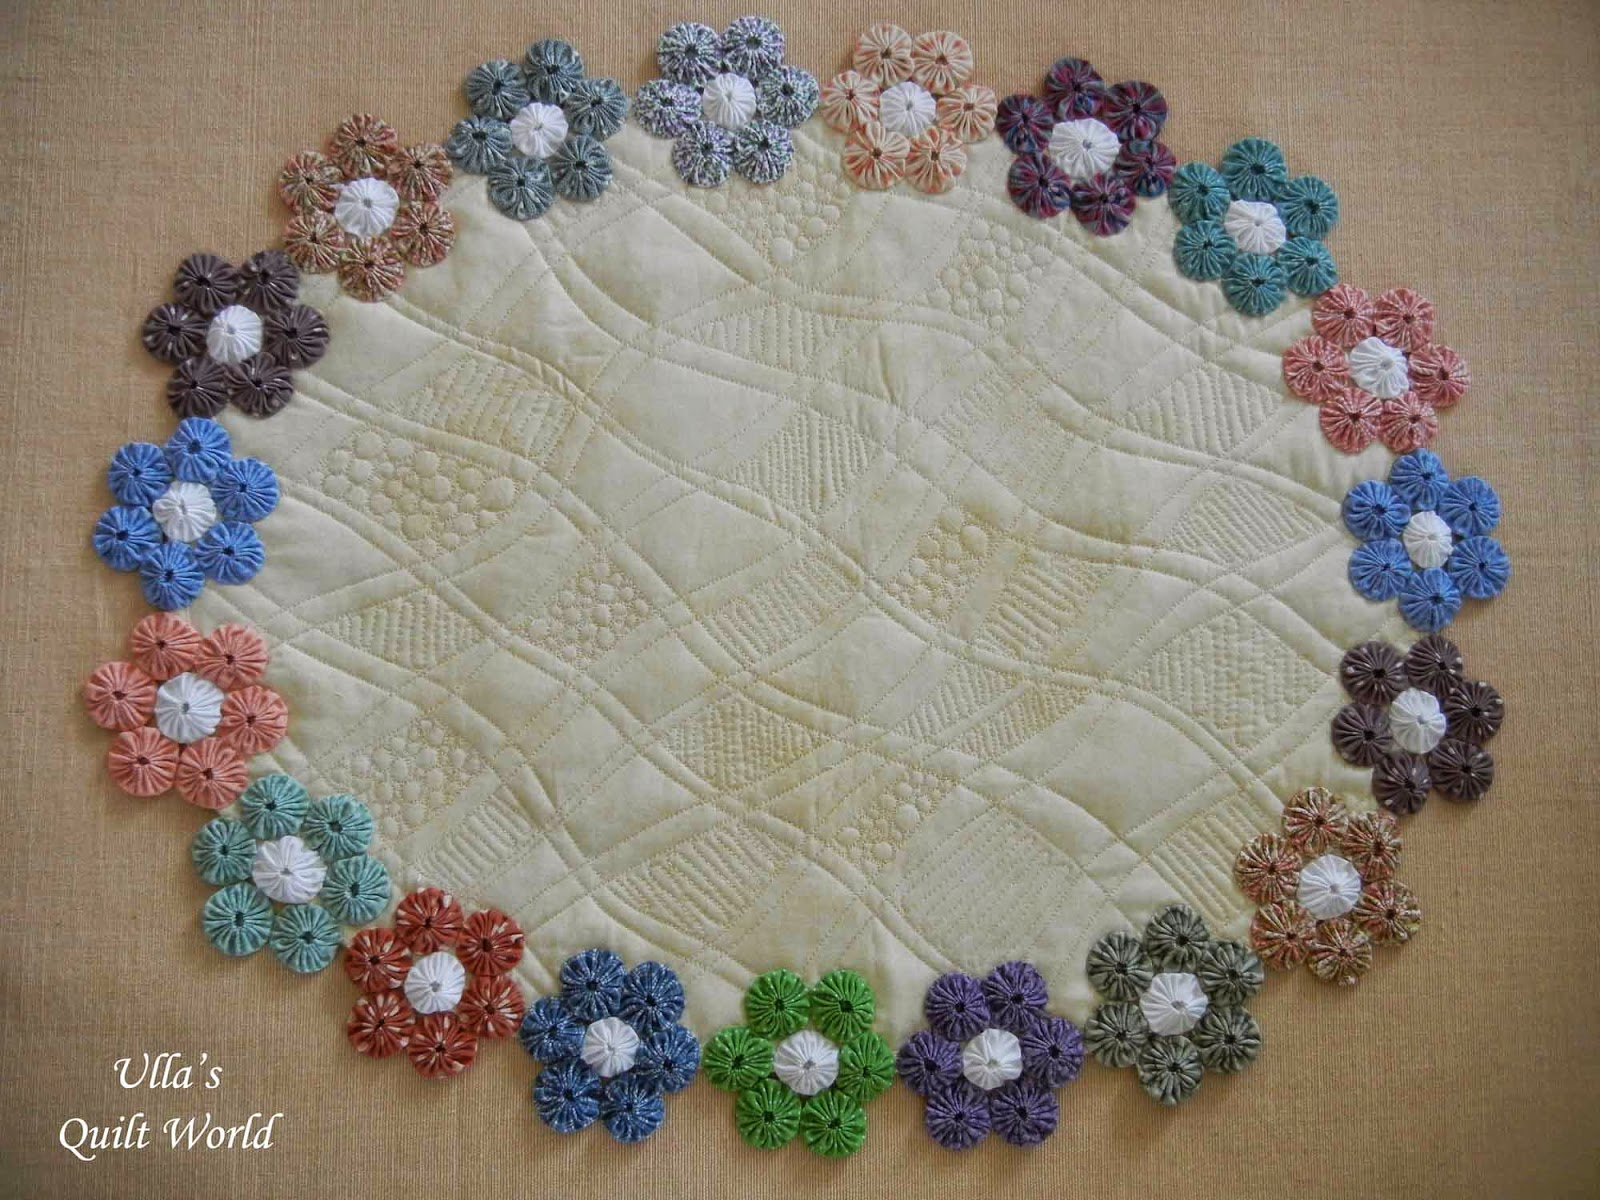 How to make a fabric table cover - I Have Cut Out The Fabric Circles 6 5 Cm Or 2 5 I Have Not Used Clover Yoyo Maker Free Motion Quilting I Haven T Use Any Pattern Or Draw The Lines